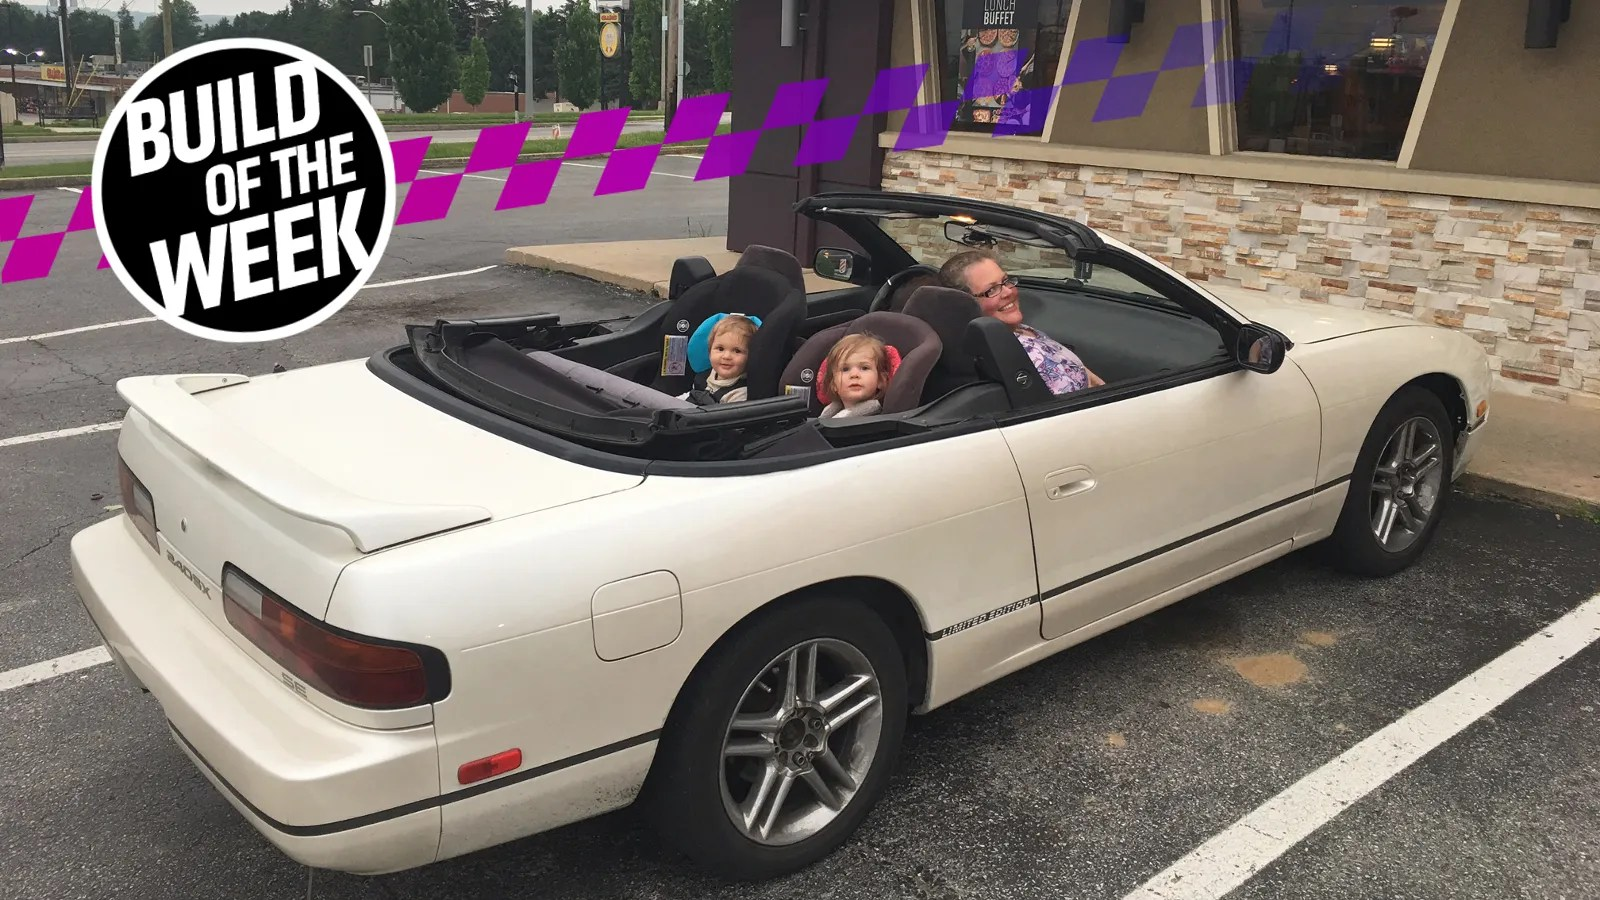 But Convertible This Nissan 240sx Convertible Was A Legendary Rip Off From Hell